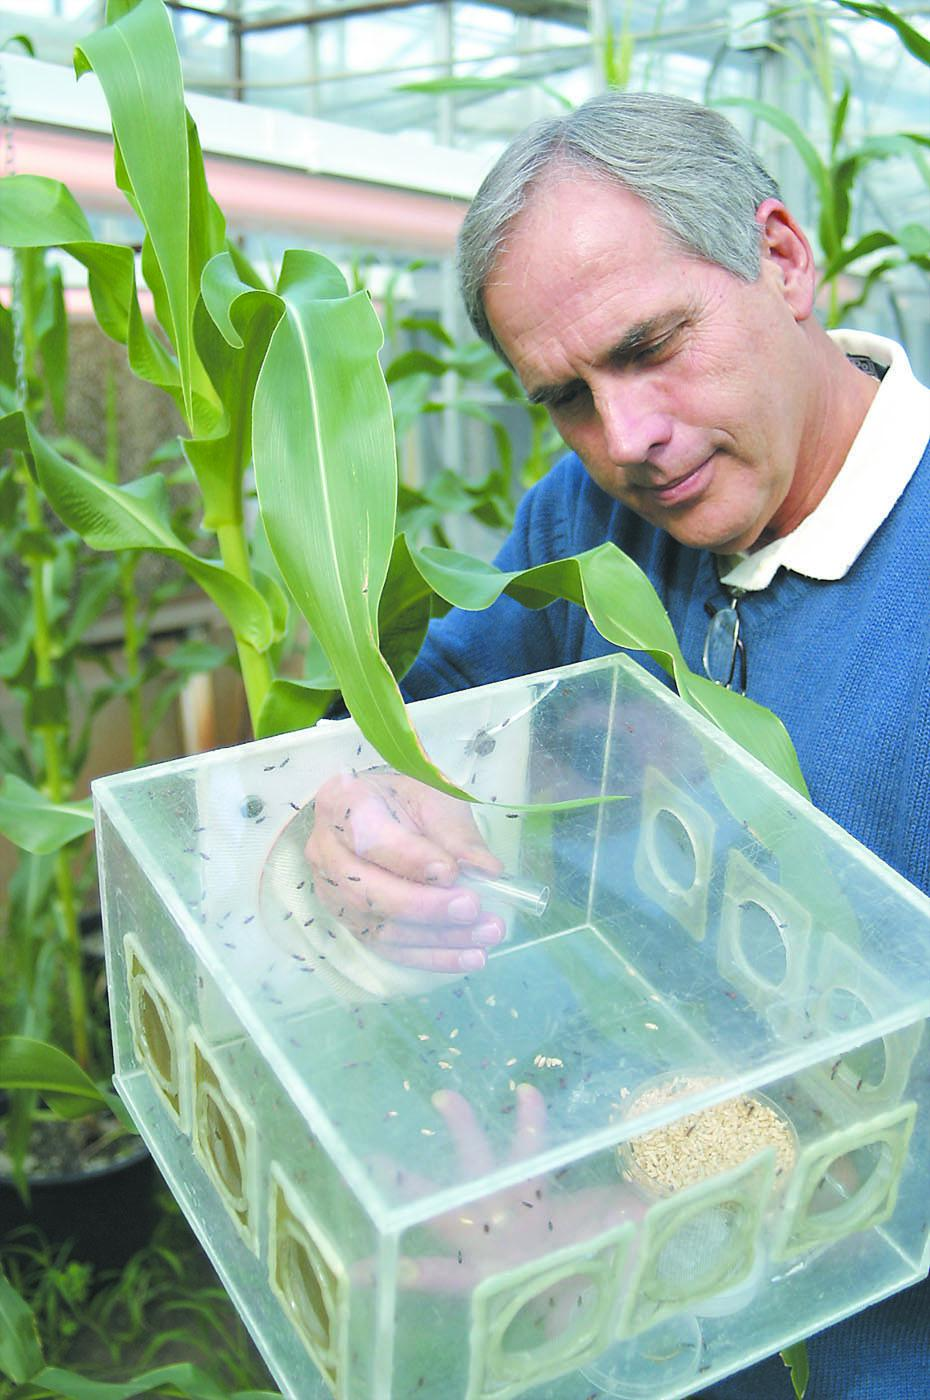 Mississippi State University entomology alumnus Joe Lewis conducted research with parasitic wasps as part of a cooperative United States Department of Agriculture-Agricultural Research Service project to investigate plant response to insect attacks. (Photo courtesy of Tifton Gazette, Georgia/Paula Stuhr)